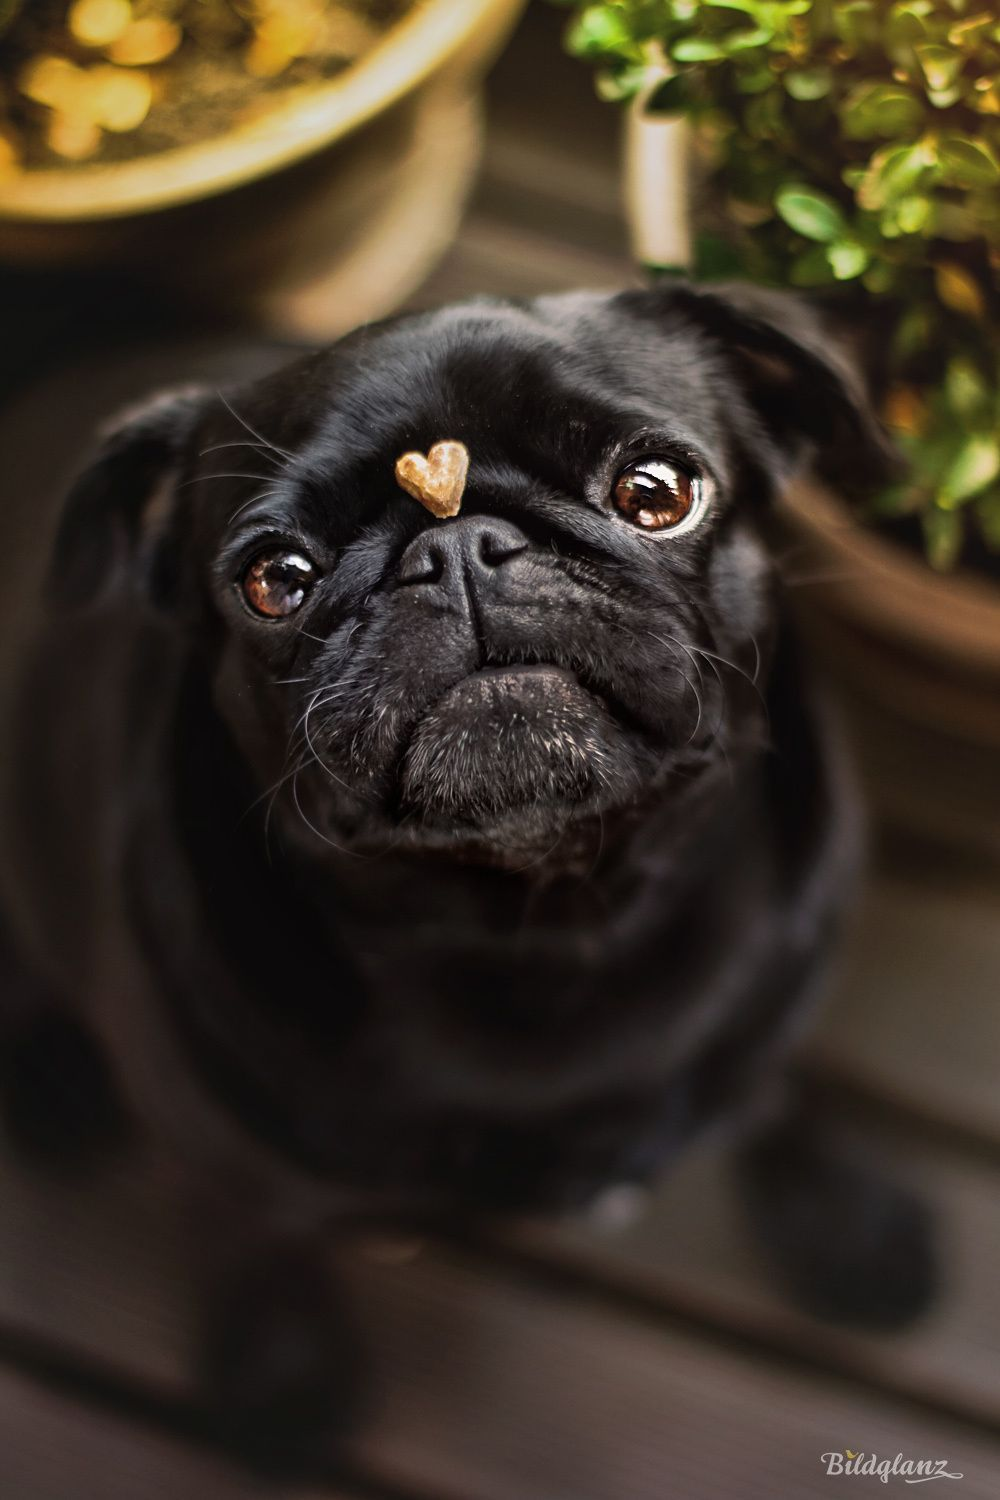 My Heart Is Your Heart Puppies Cute Pugs Pug Love